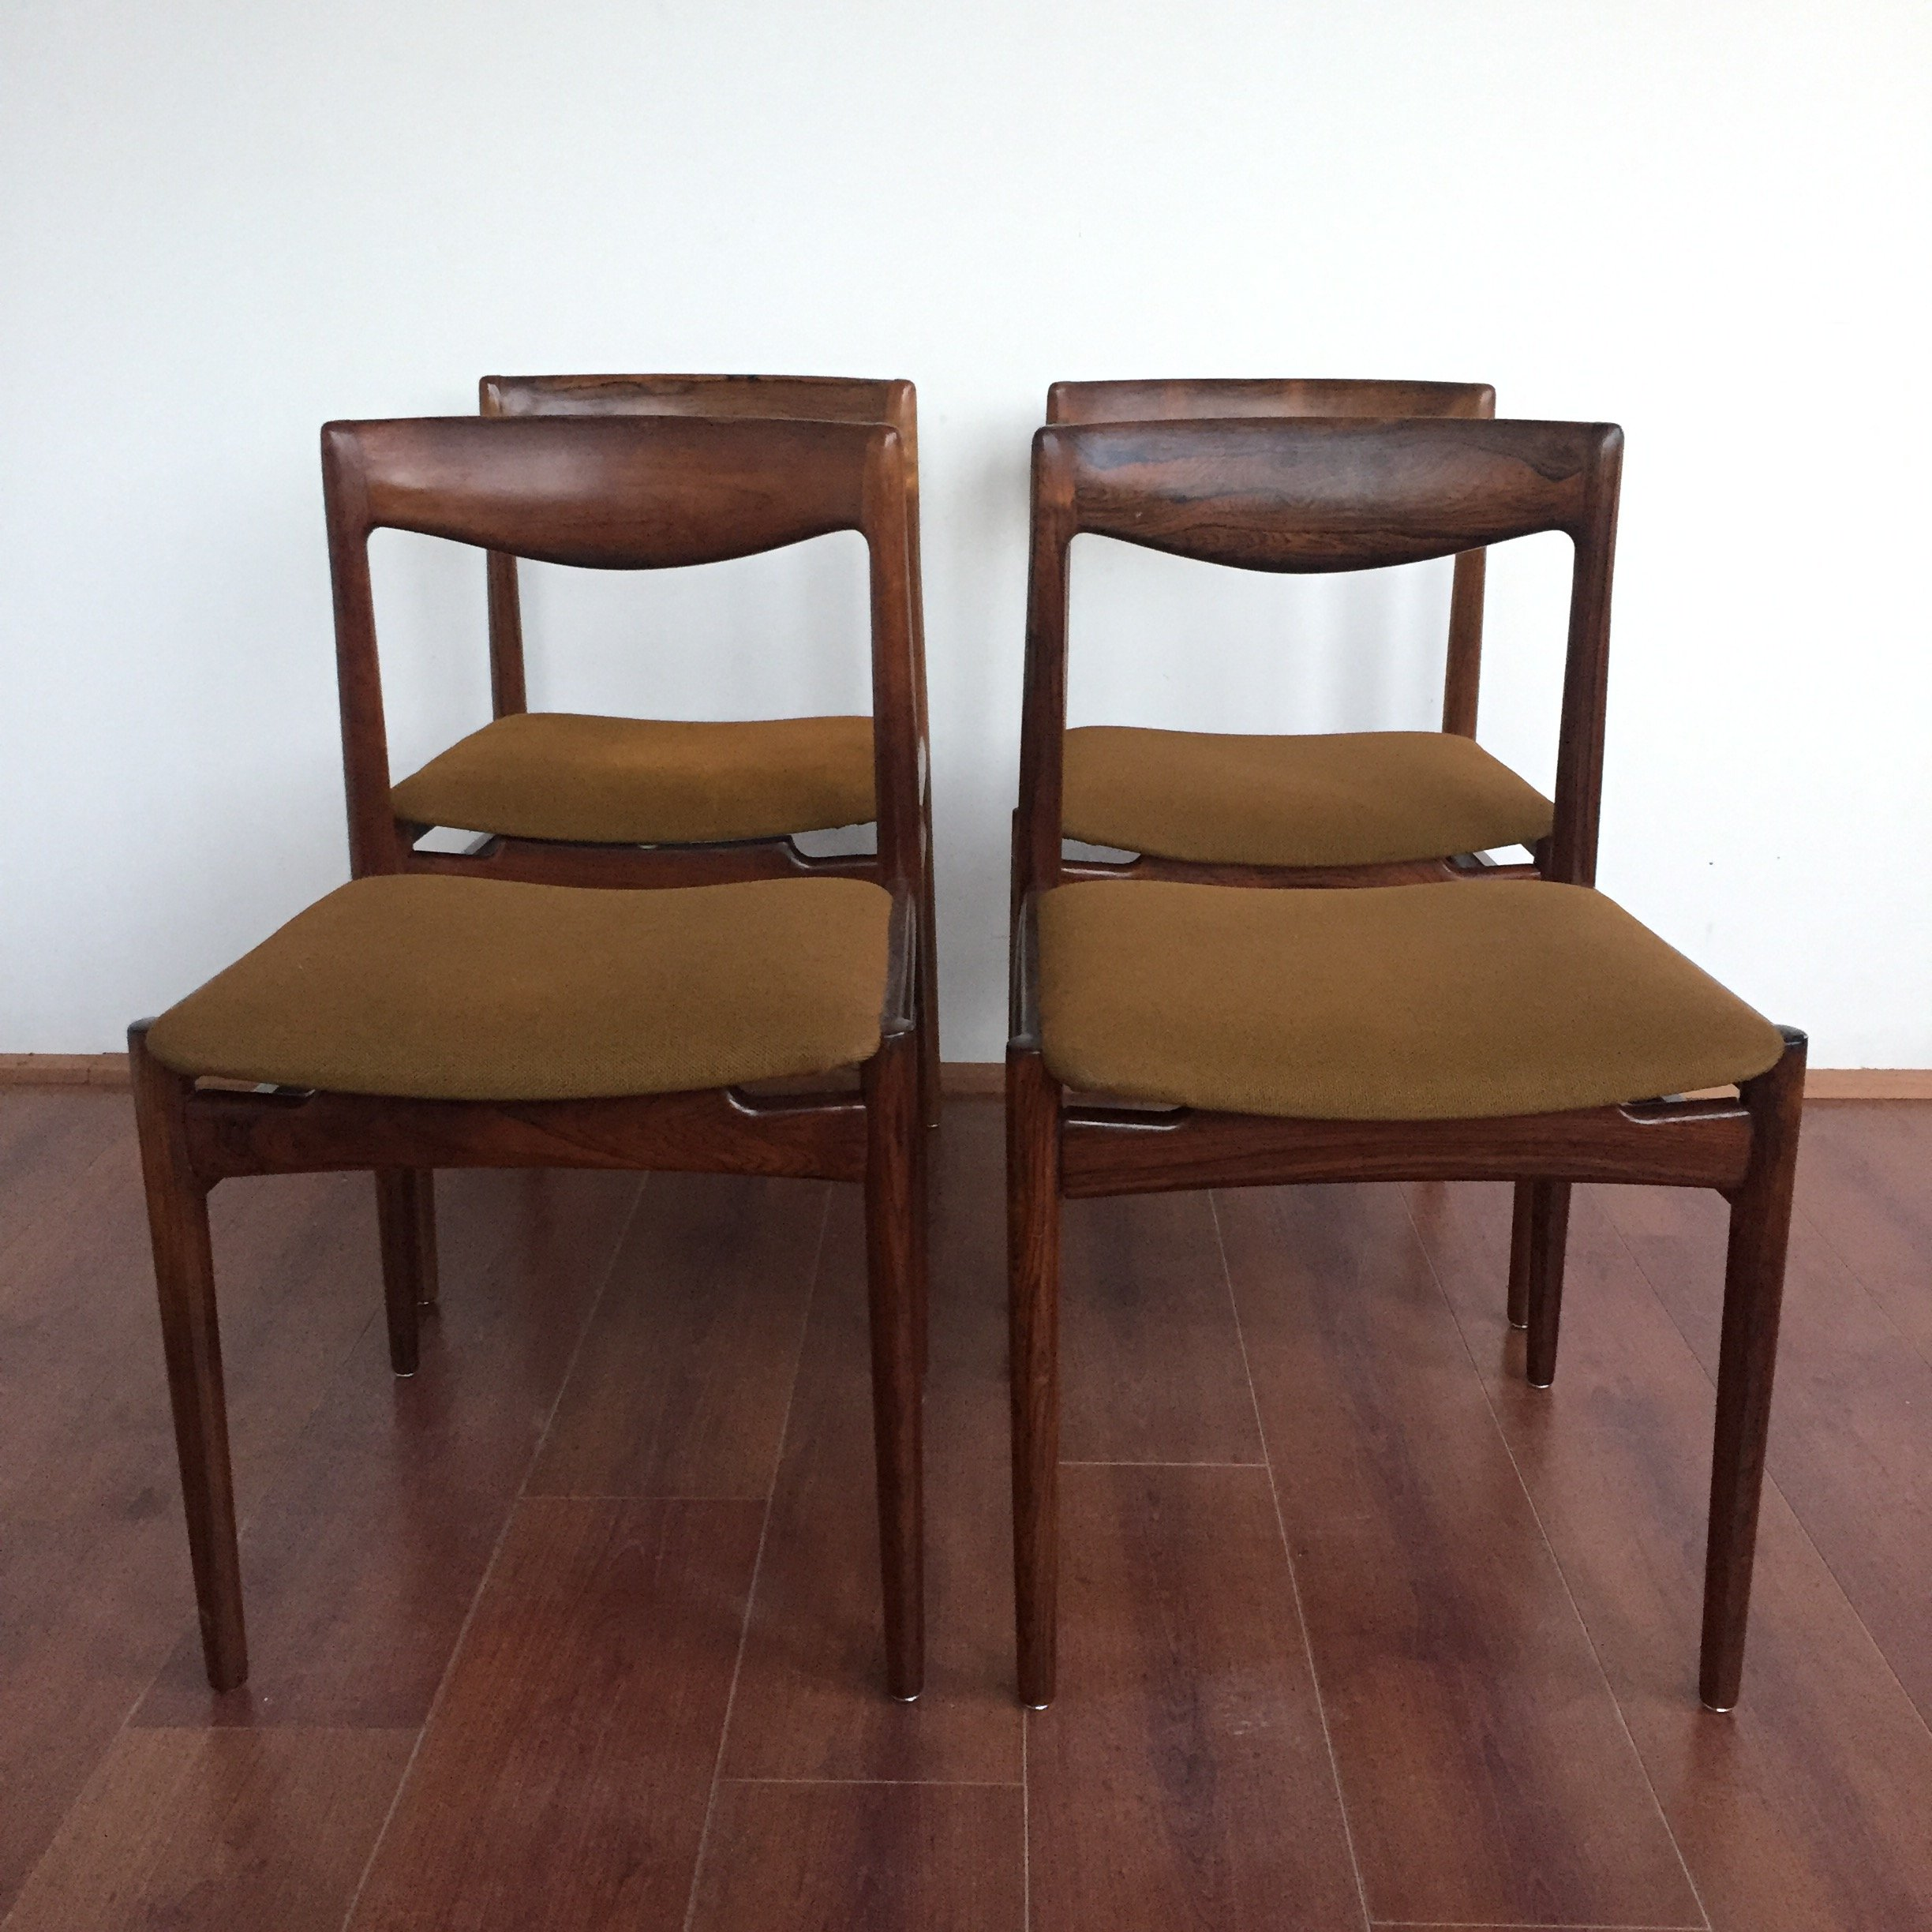 separation shoes ca3d9 17ad7 1960's Danish design rosewood dining chairs by Lübke